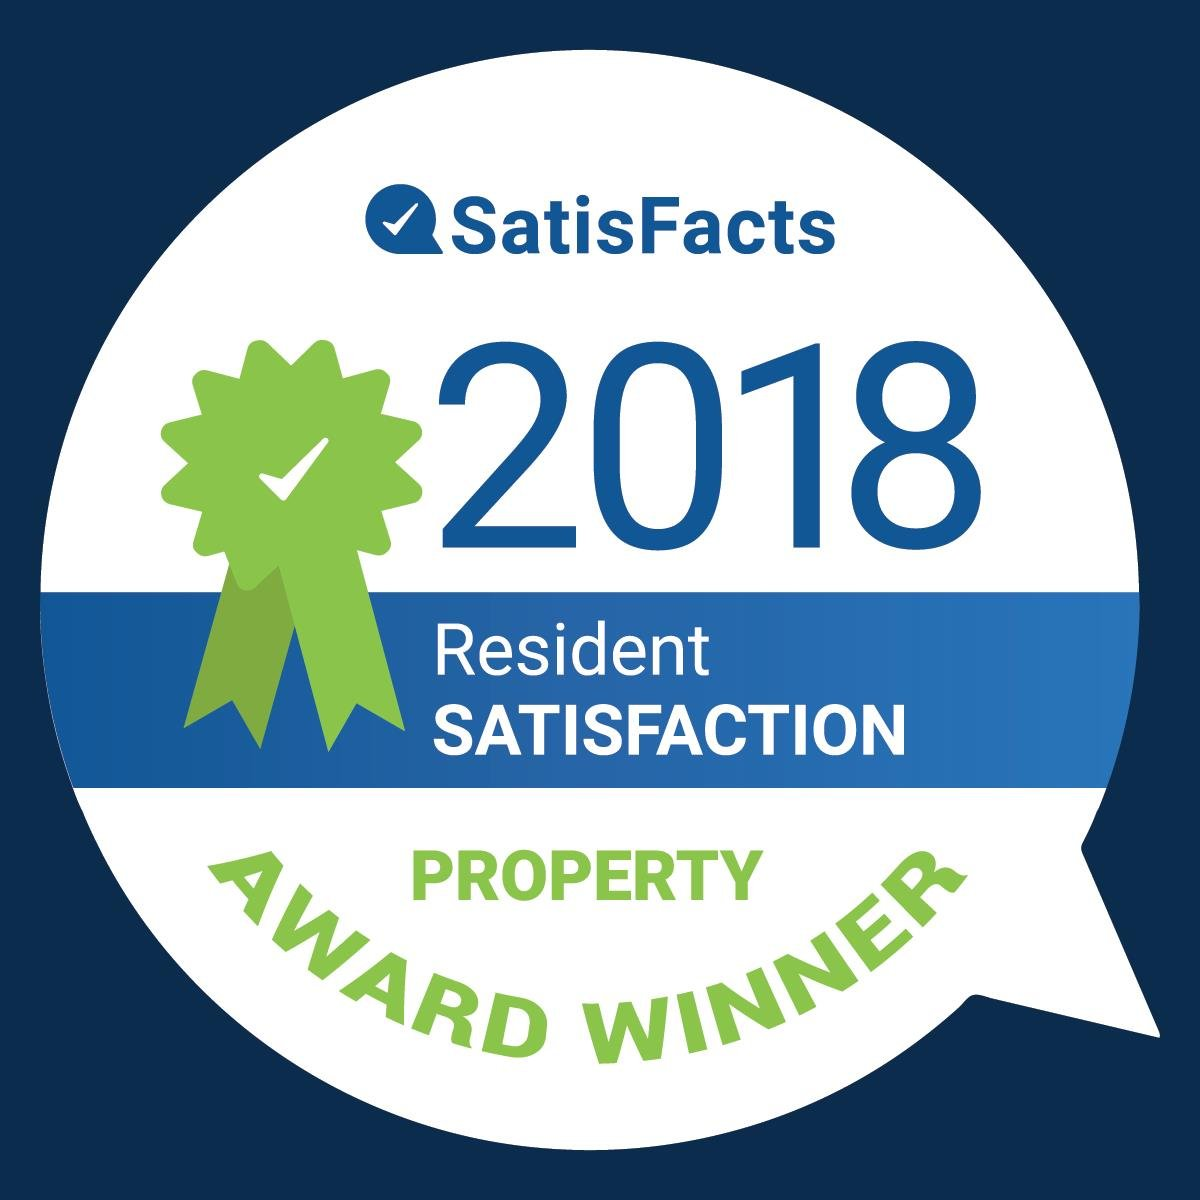 2018 SatisFacts Resident Satisfaction Property Award Winner